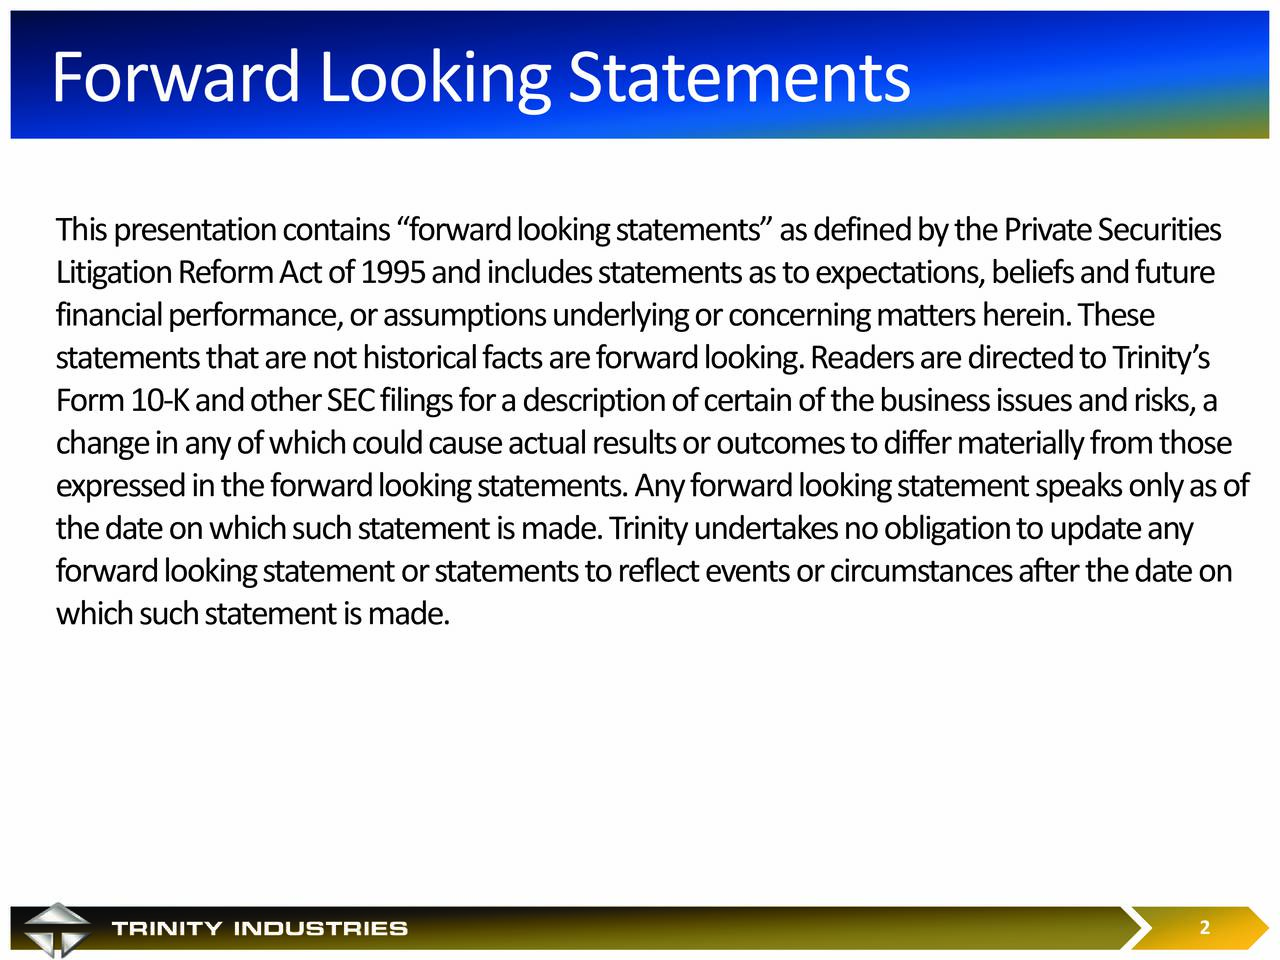 Thispresentation contains forward looking statements as defined by the Private Securities Litigation Reform Act of 1995and includes statements as to expectations, beliefs and future financial performance, or assumptions underlying or concerning matters herein. These statements that are not historical facts are forward looking.Readers are directed to Trinitys Form 10 -K and other SEC filings for a description of certain of the business issues and risks, a change in any of which could cause actual results or outcomes to differ materially from those expressed in the forwardlooking statements. Any forwardlooking statement speaks only as of the date on which such statement is made. Trinity undertakes no obligation to update any forward looking statement or statements to reflect events or circumstances after the date on which such statement is made. A Premiere Diversified Industrial Company 2